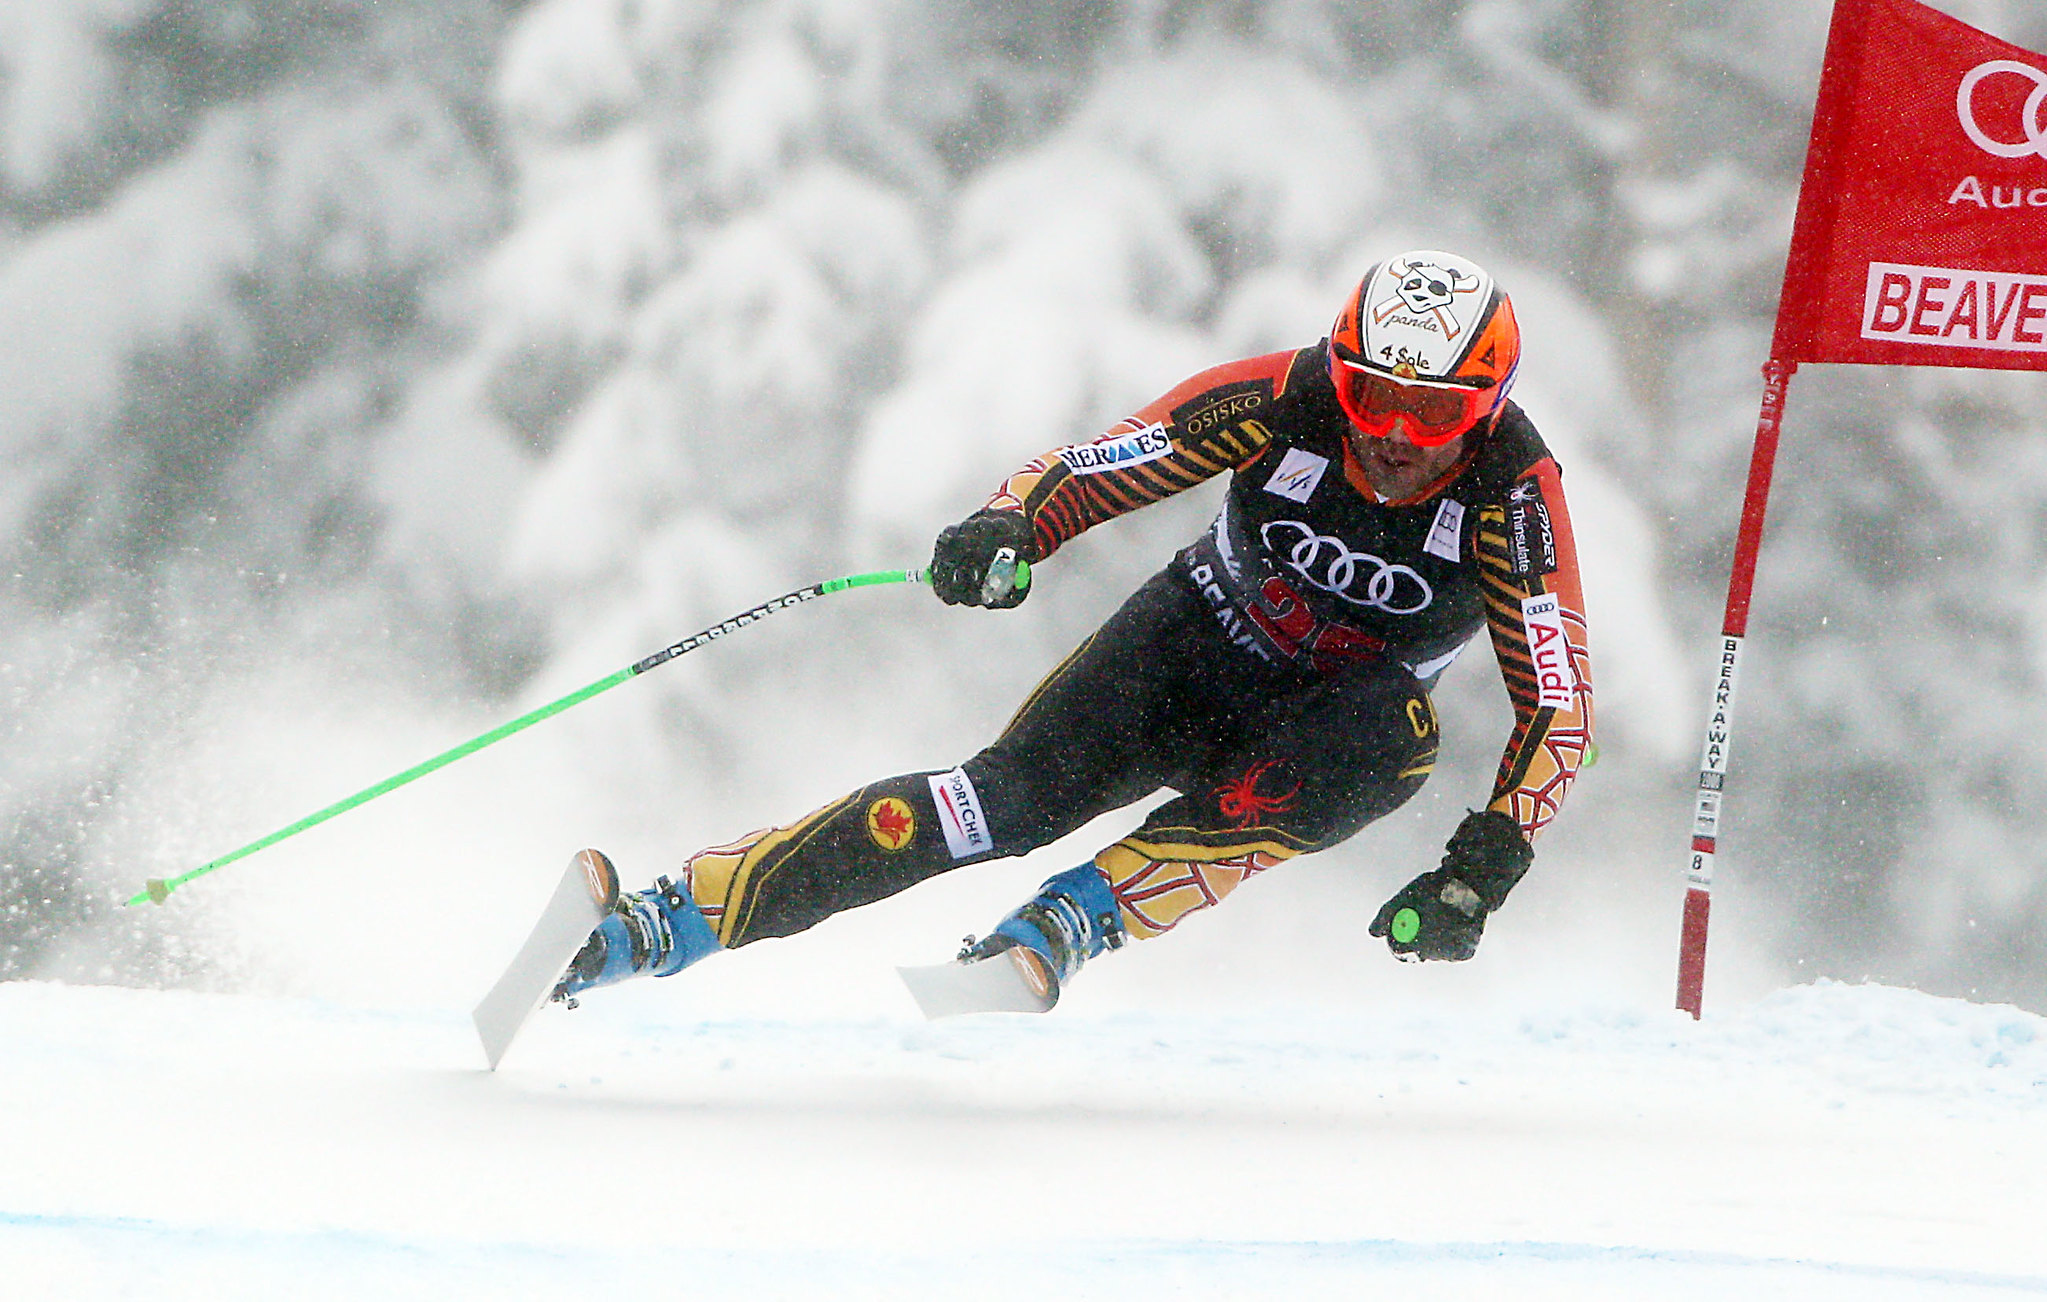 Jan Hudec speeds his way to a 7th place finish at the FIS Alpine World Cup in Beaver Creek, USA